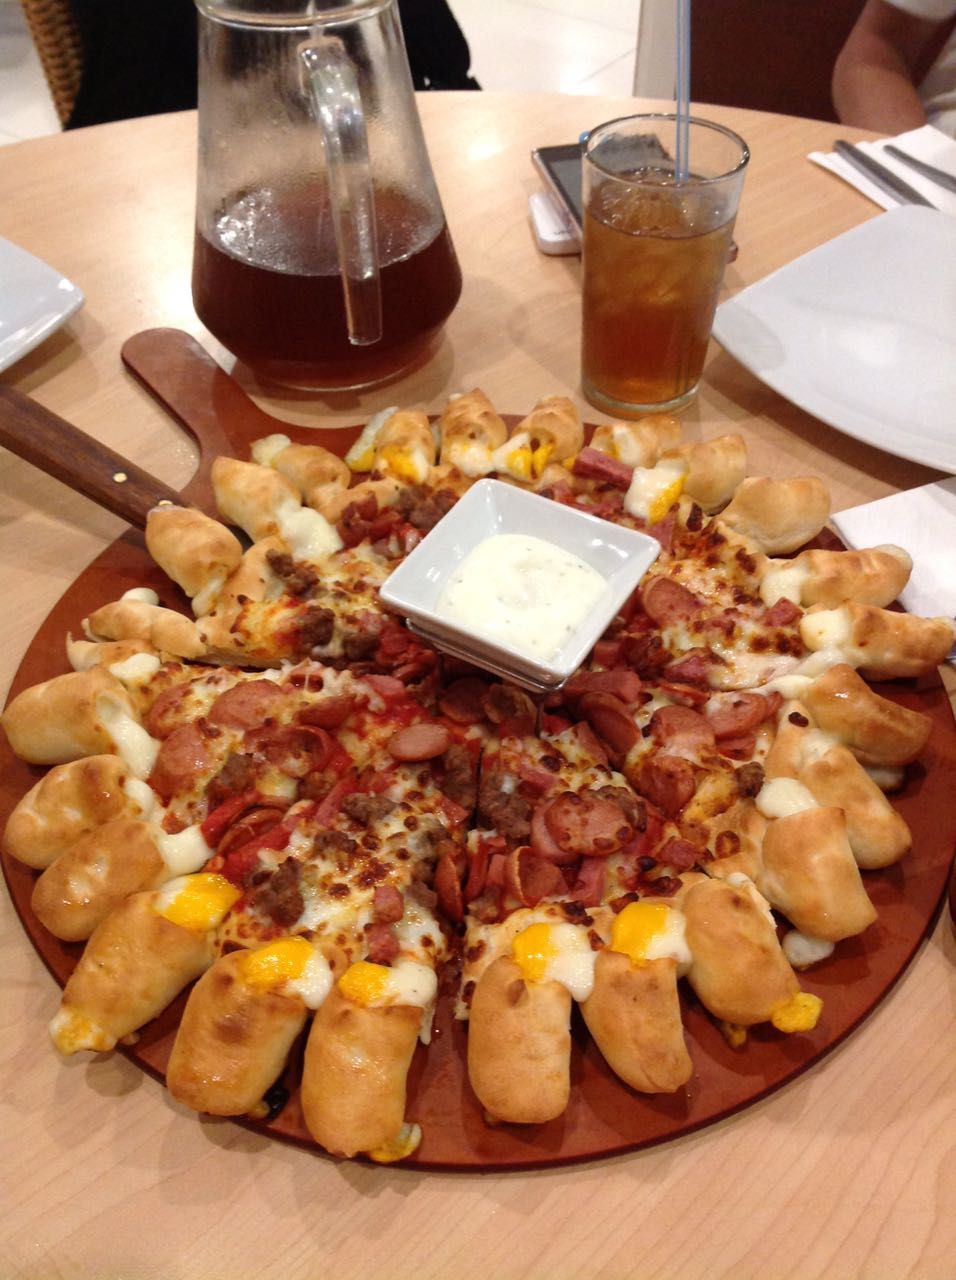 Pizza Hut In Indonesia Vs Australia Is So Incomparable Who Wouldn T Love This Cheese Crust Meat Lovers Pizza